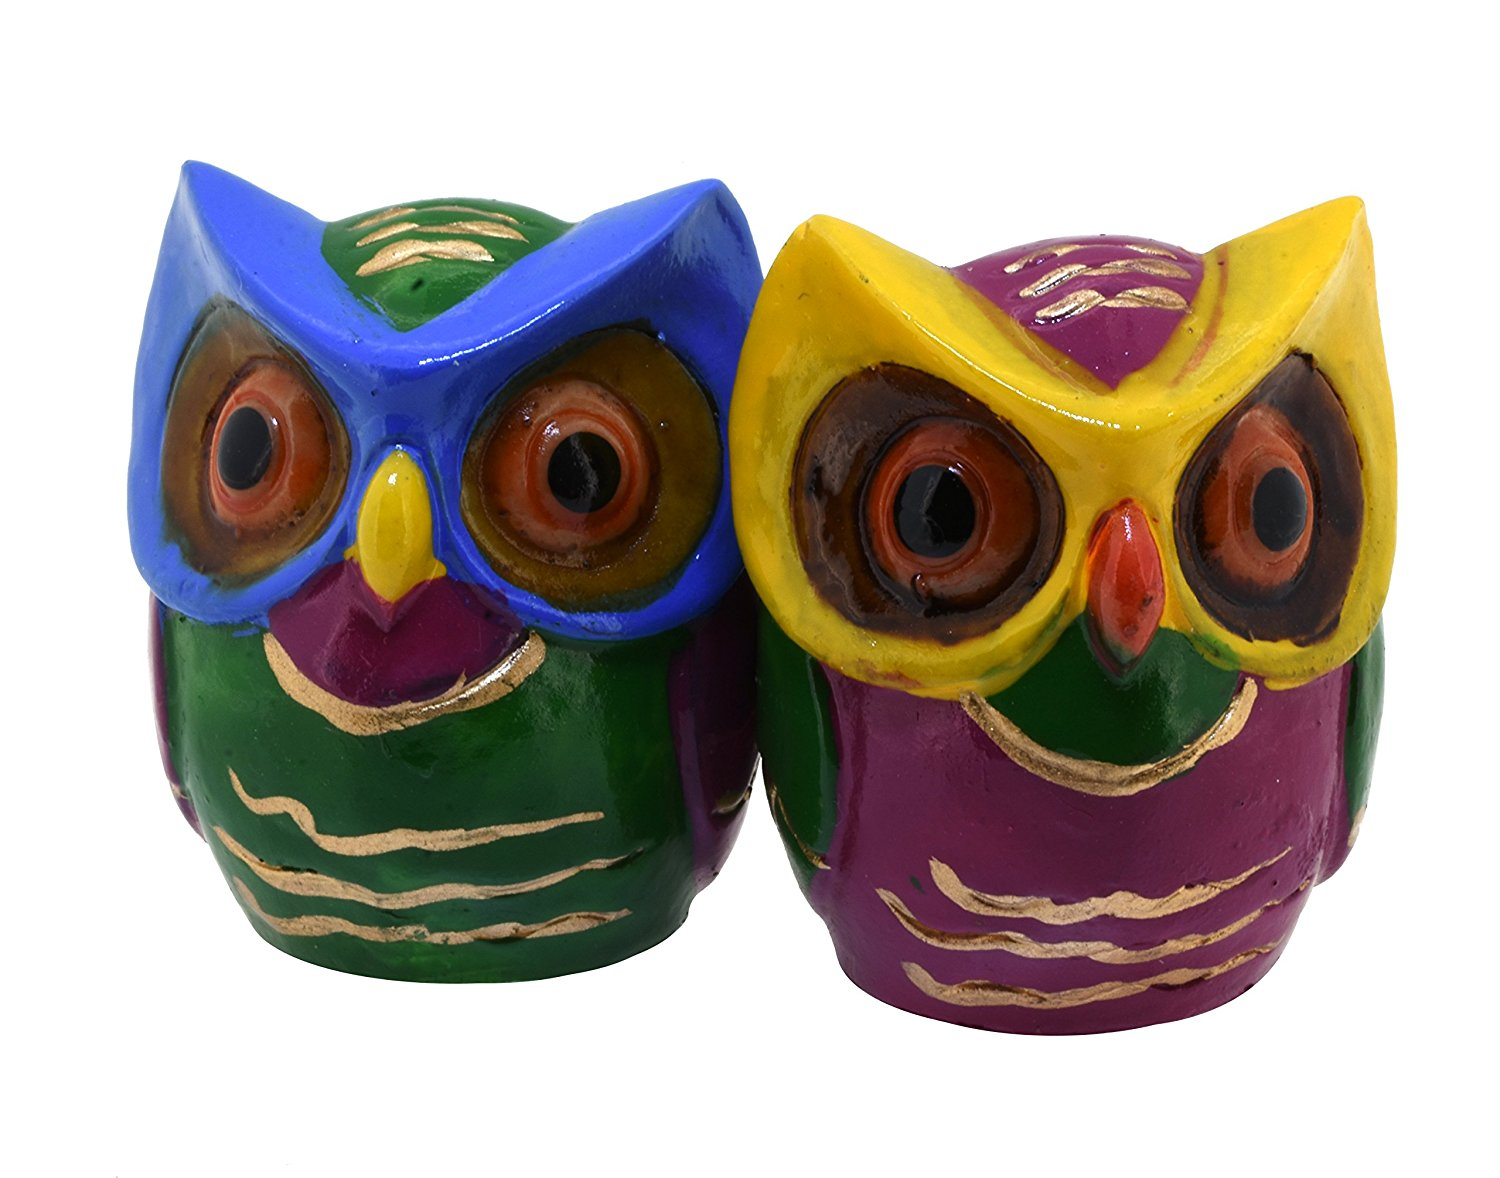 Cute Owl Decor Buy Pair Of Small Colorful Cute Owl Statues Decorative Figurines